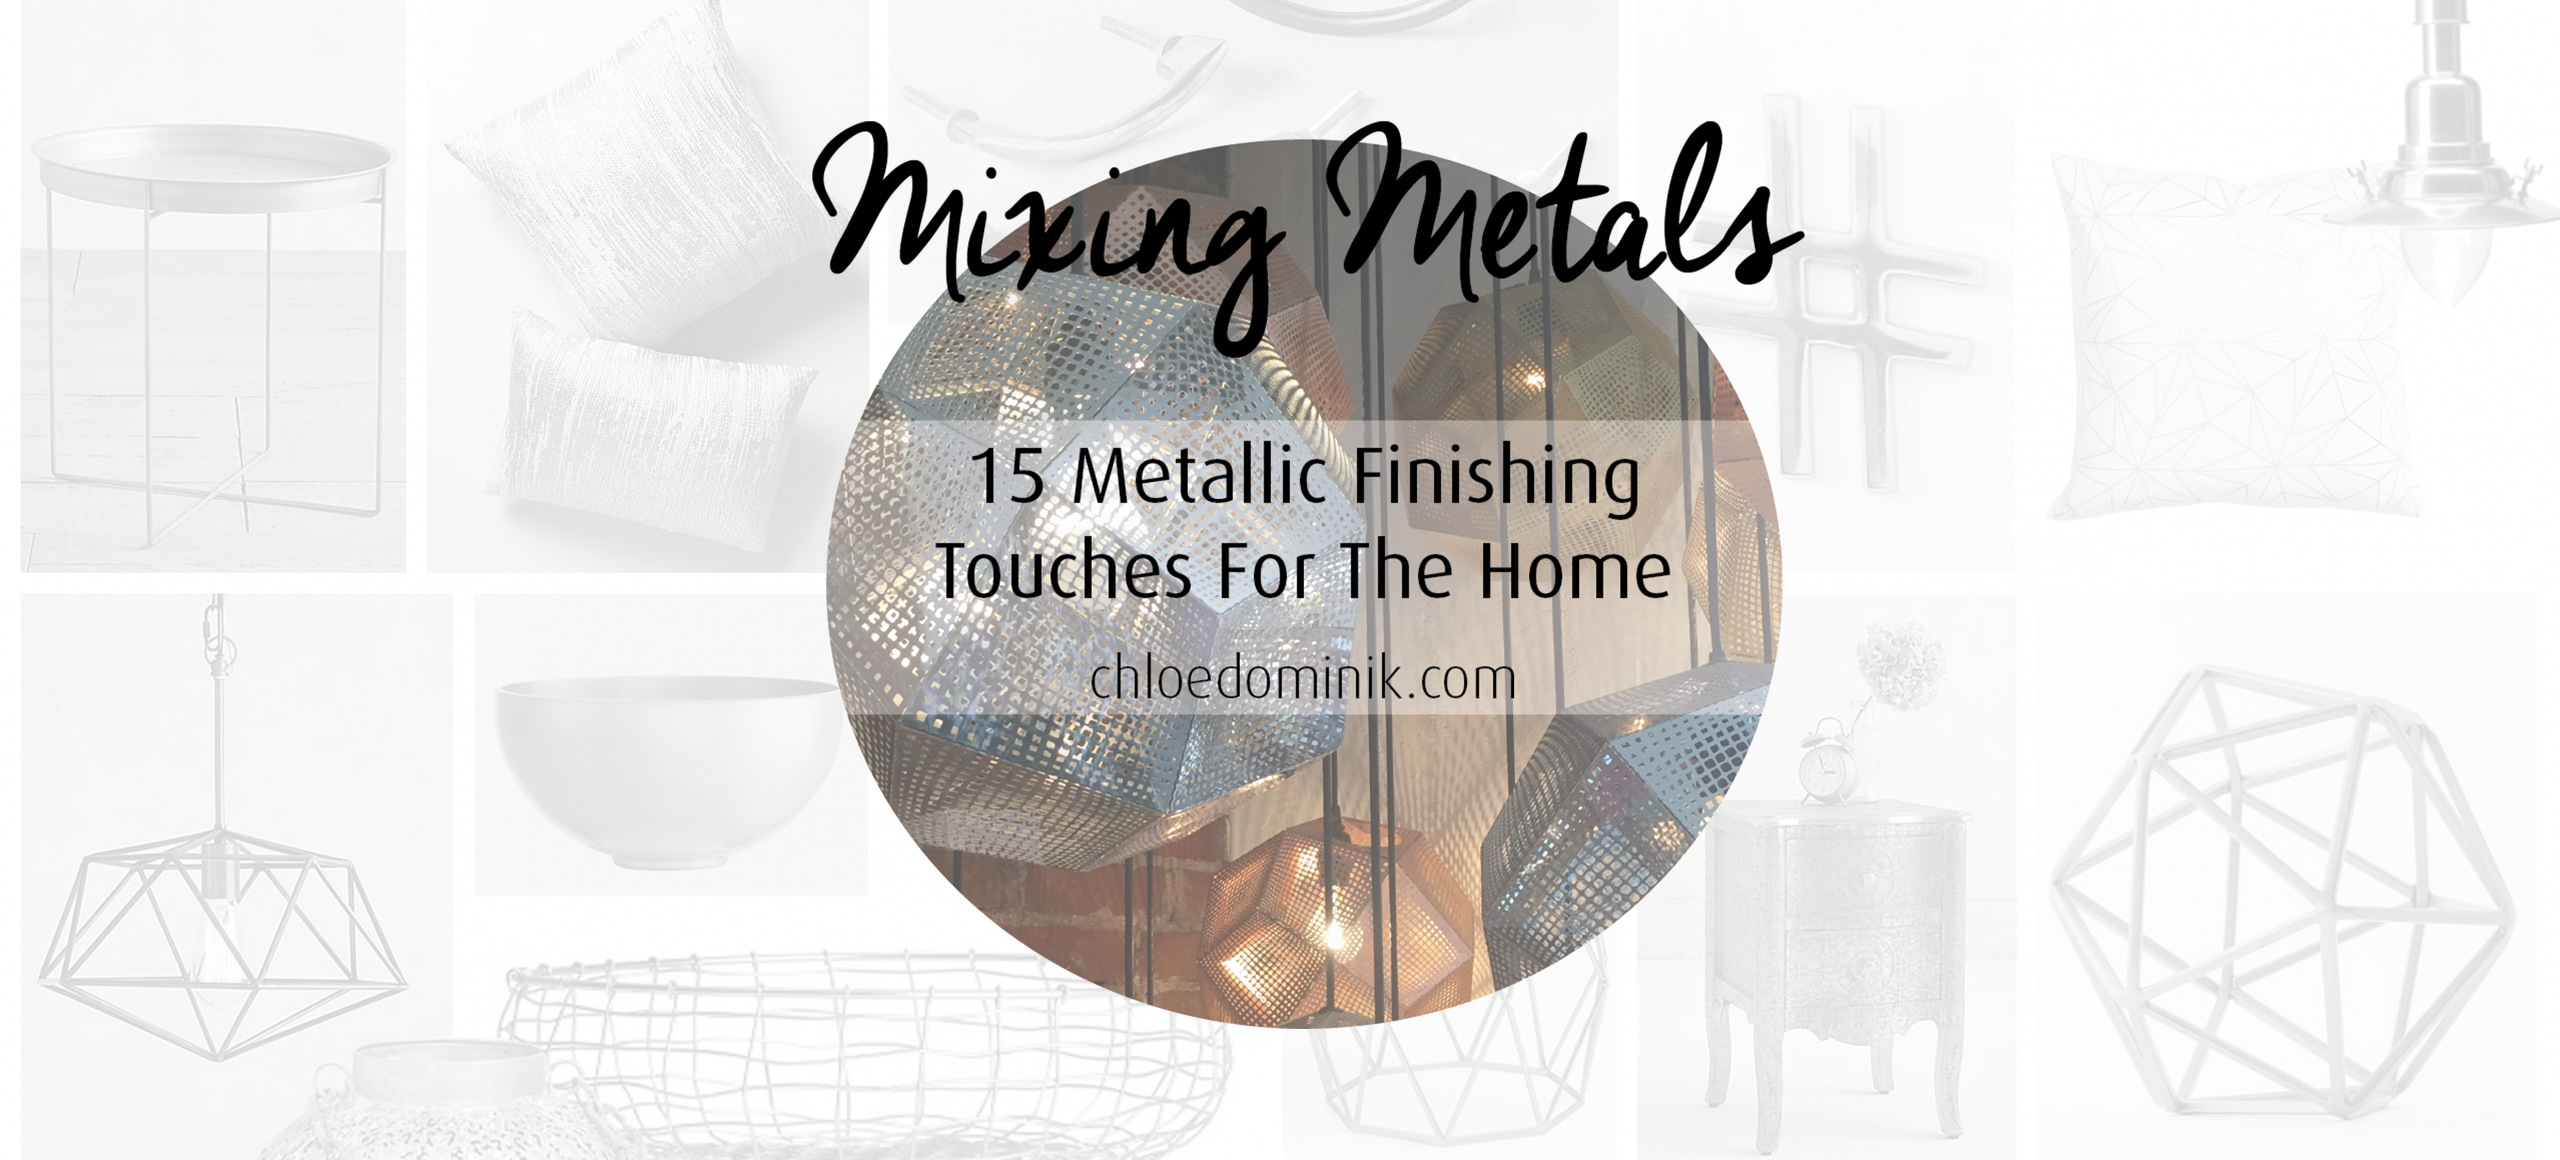 Mixing Metals: 15 Metallic Finishing Touches For The Home